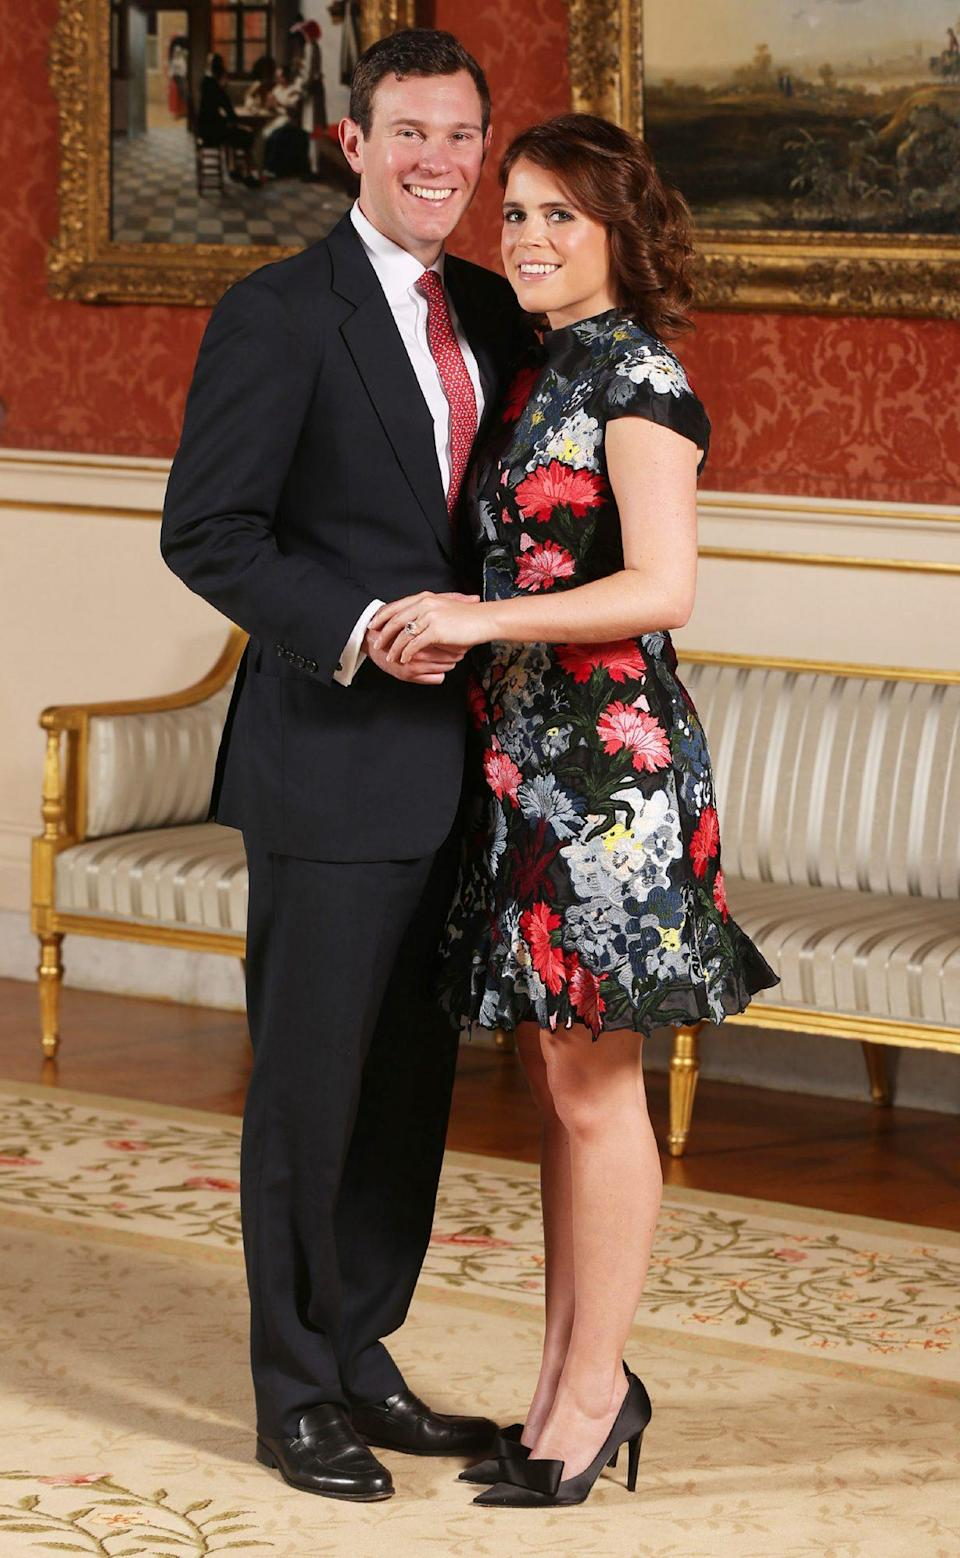 "<p>Jack proposed to Princess Eugenie during a January 2018 vacation to Nicaragua.</p> <p>""The lake was so beautiful. The light was just a special light I had never seen,"" the royal said. ""I actually said, 'This is an incredible moment,' and then he popped the question, which was really surprising even though we have been together seven years. I was over the moon.""</p>"